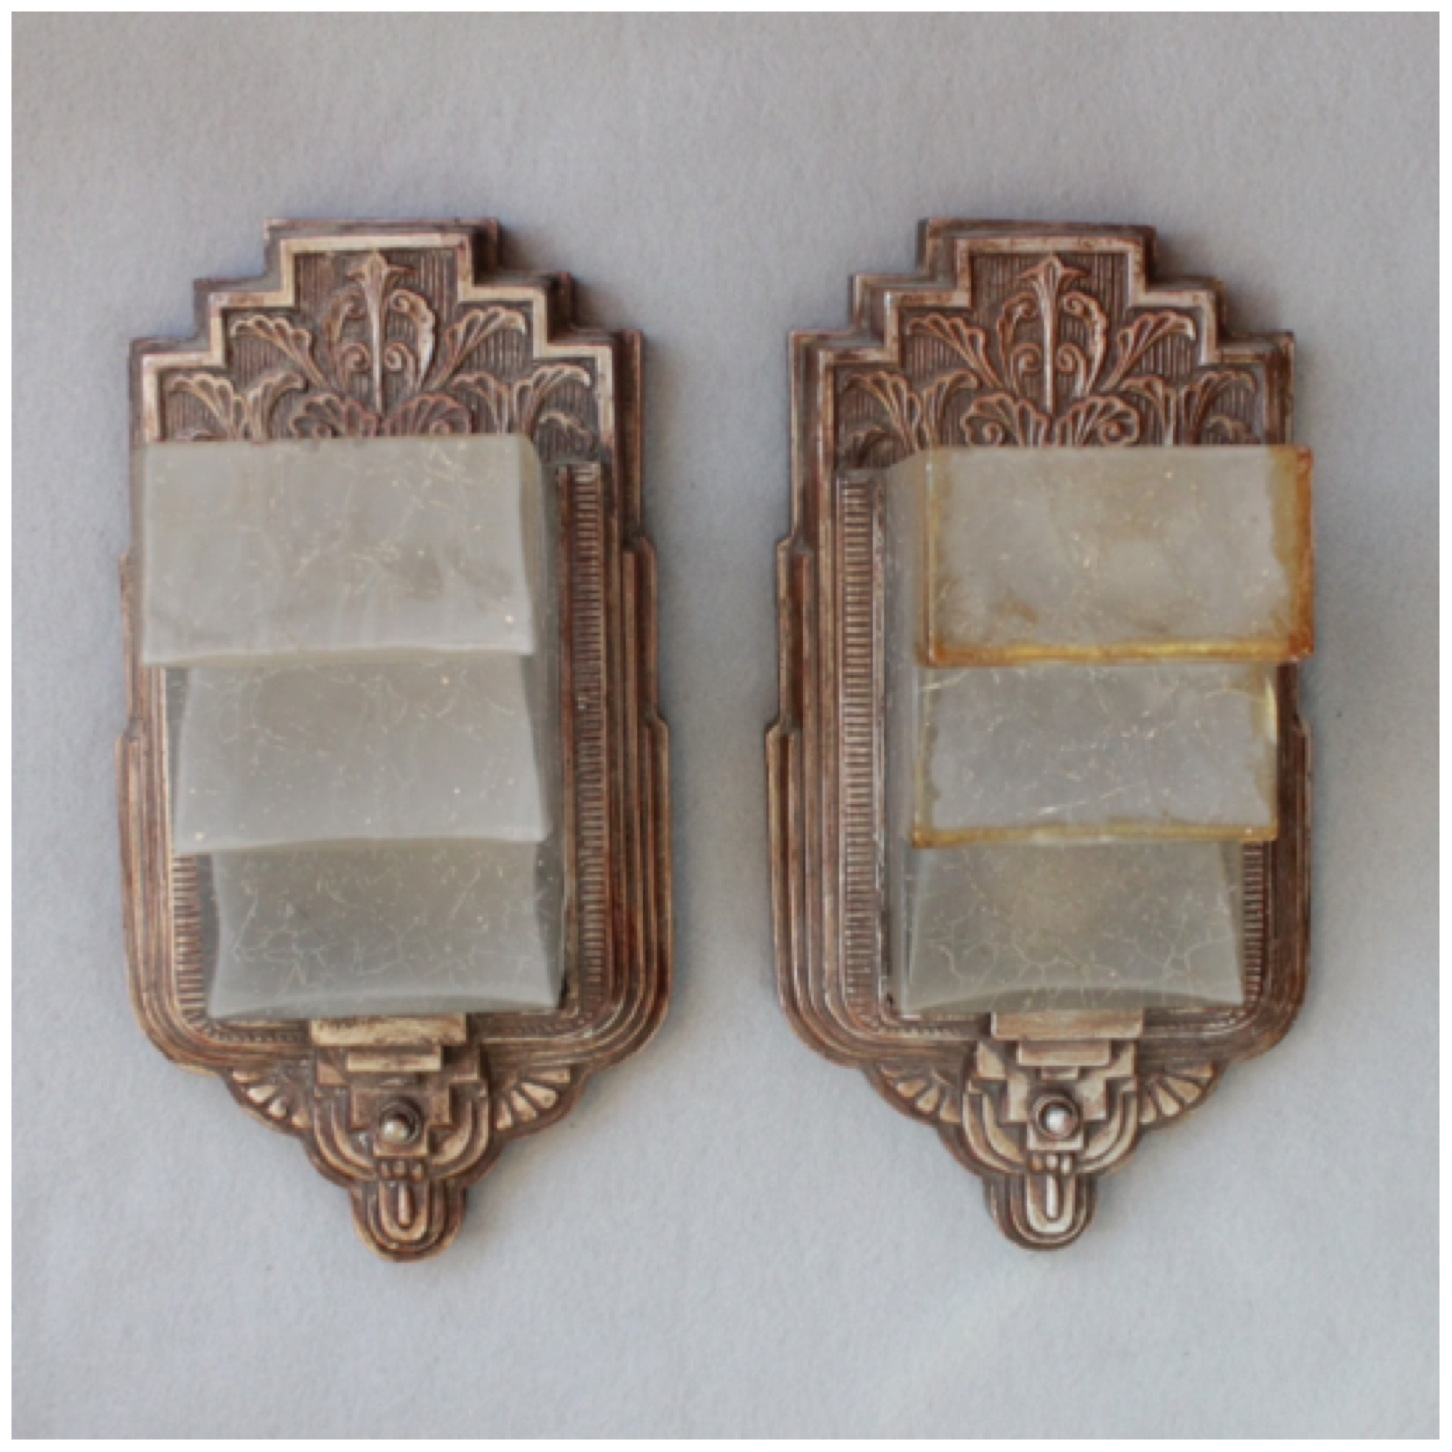 Diy155 Pair Art Deco Wall Sconces | Bogart, Bremmer & Bradley Antiques Inside Most Recently Released Art Deco Wall Sconces (View 11 of 20)